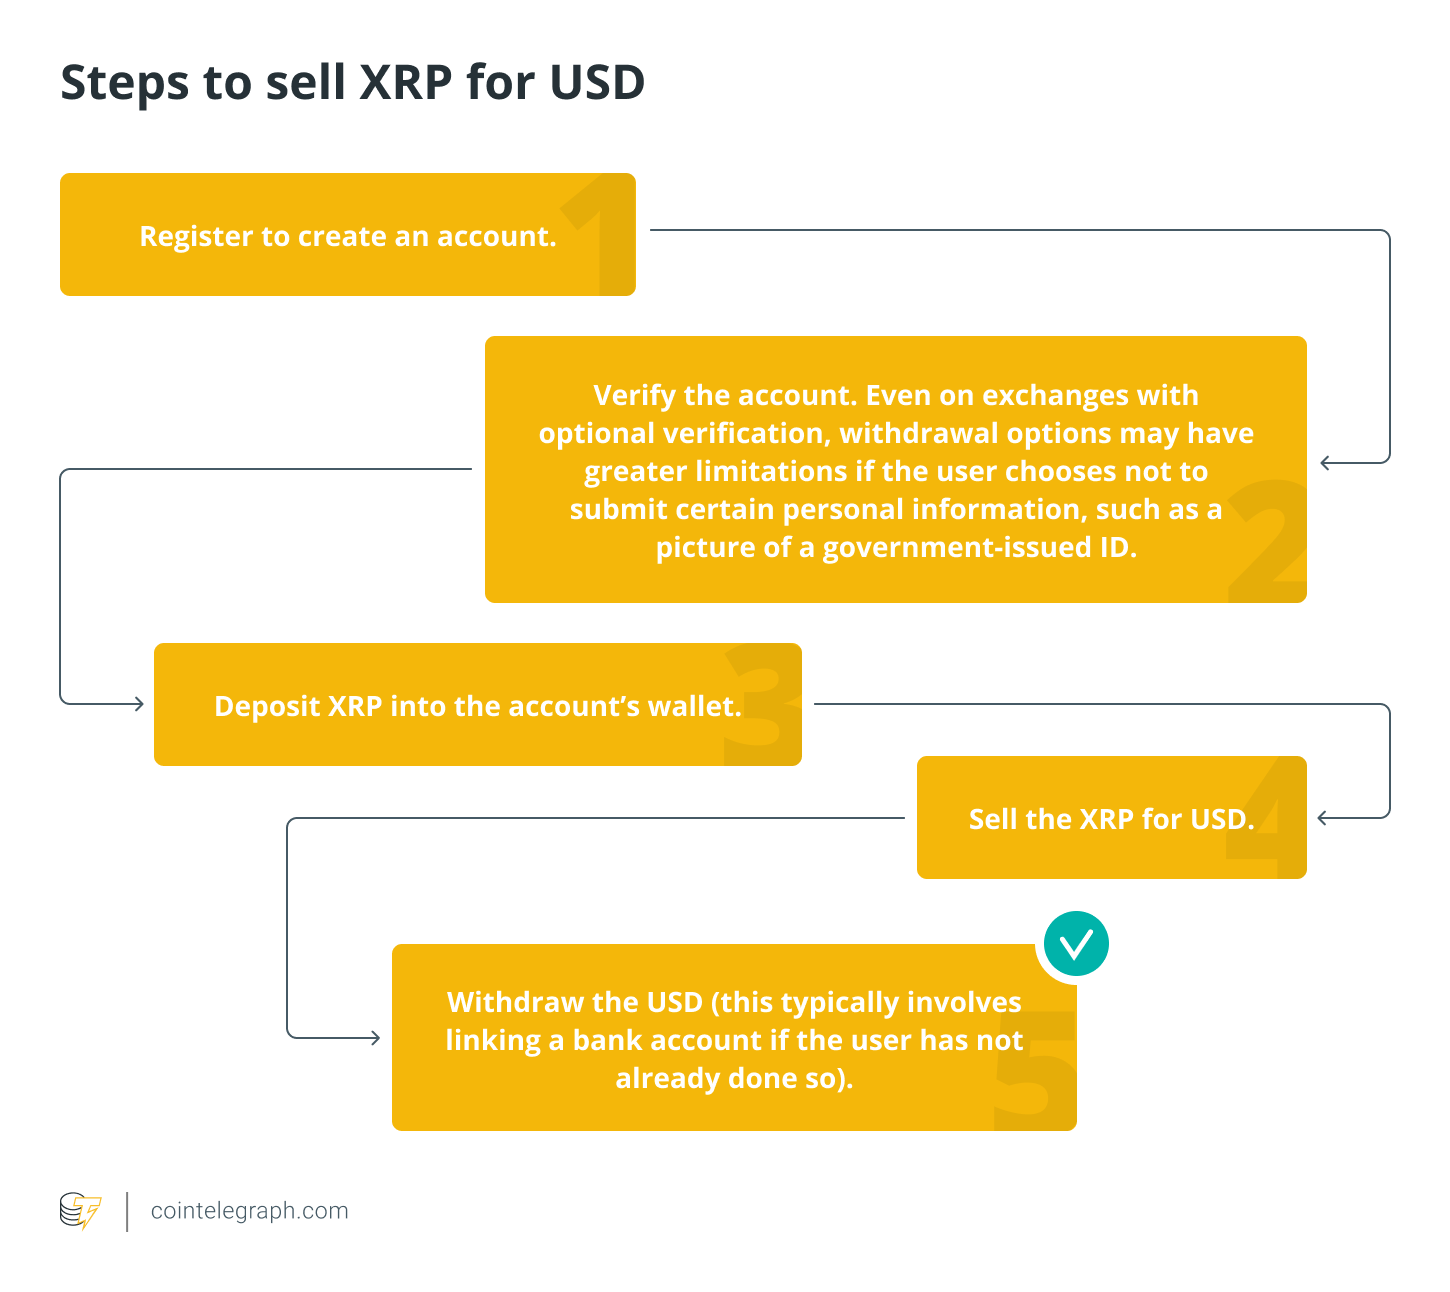 Steps to sell XRP for USD